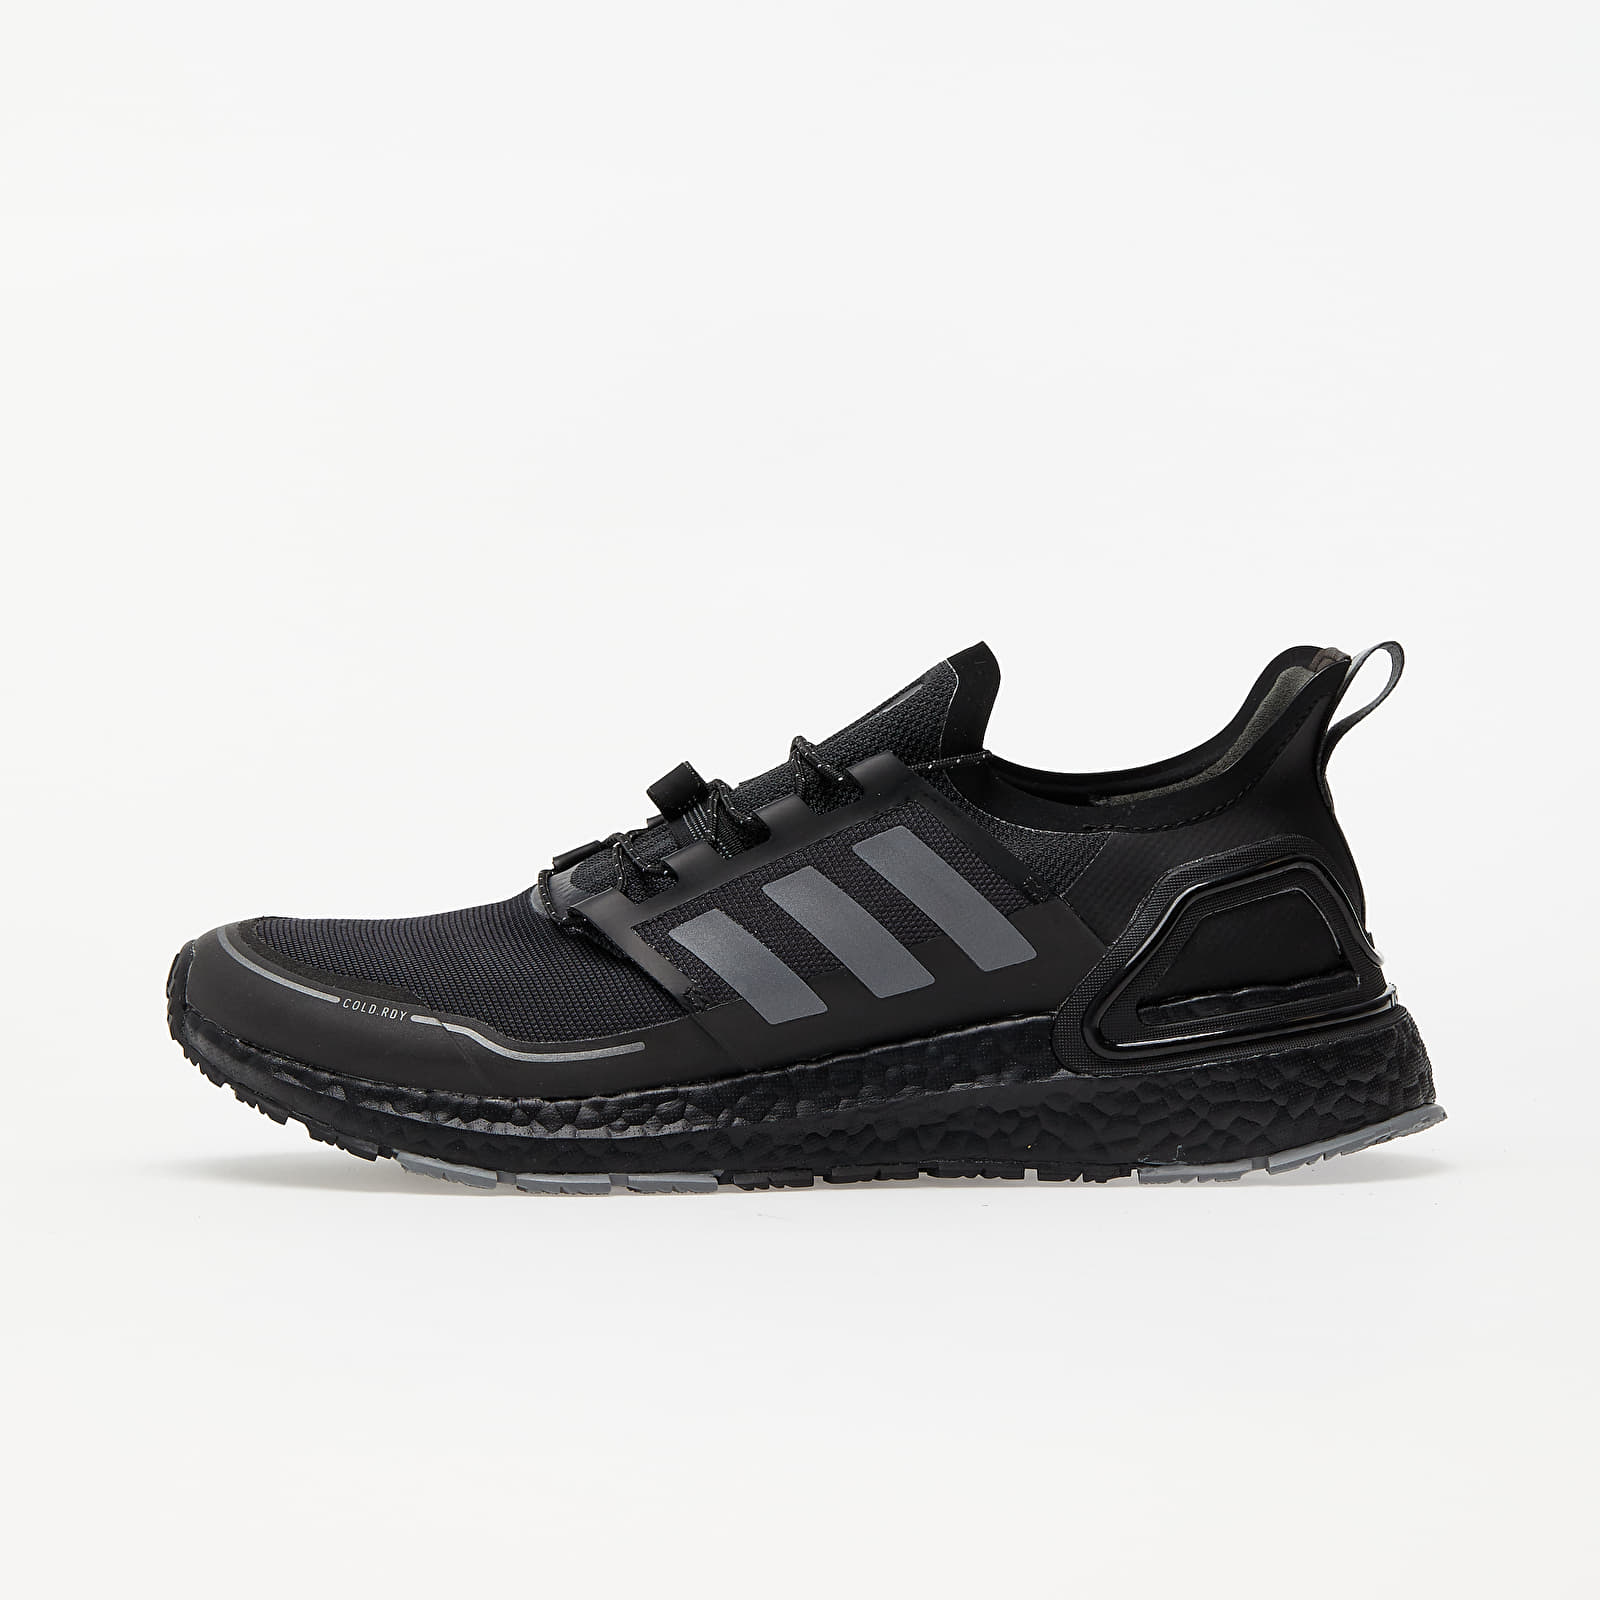 adidas UltraBOOST COLD.RDY Core Black/ Iron Metalic/ Core Black EG9801